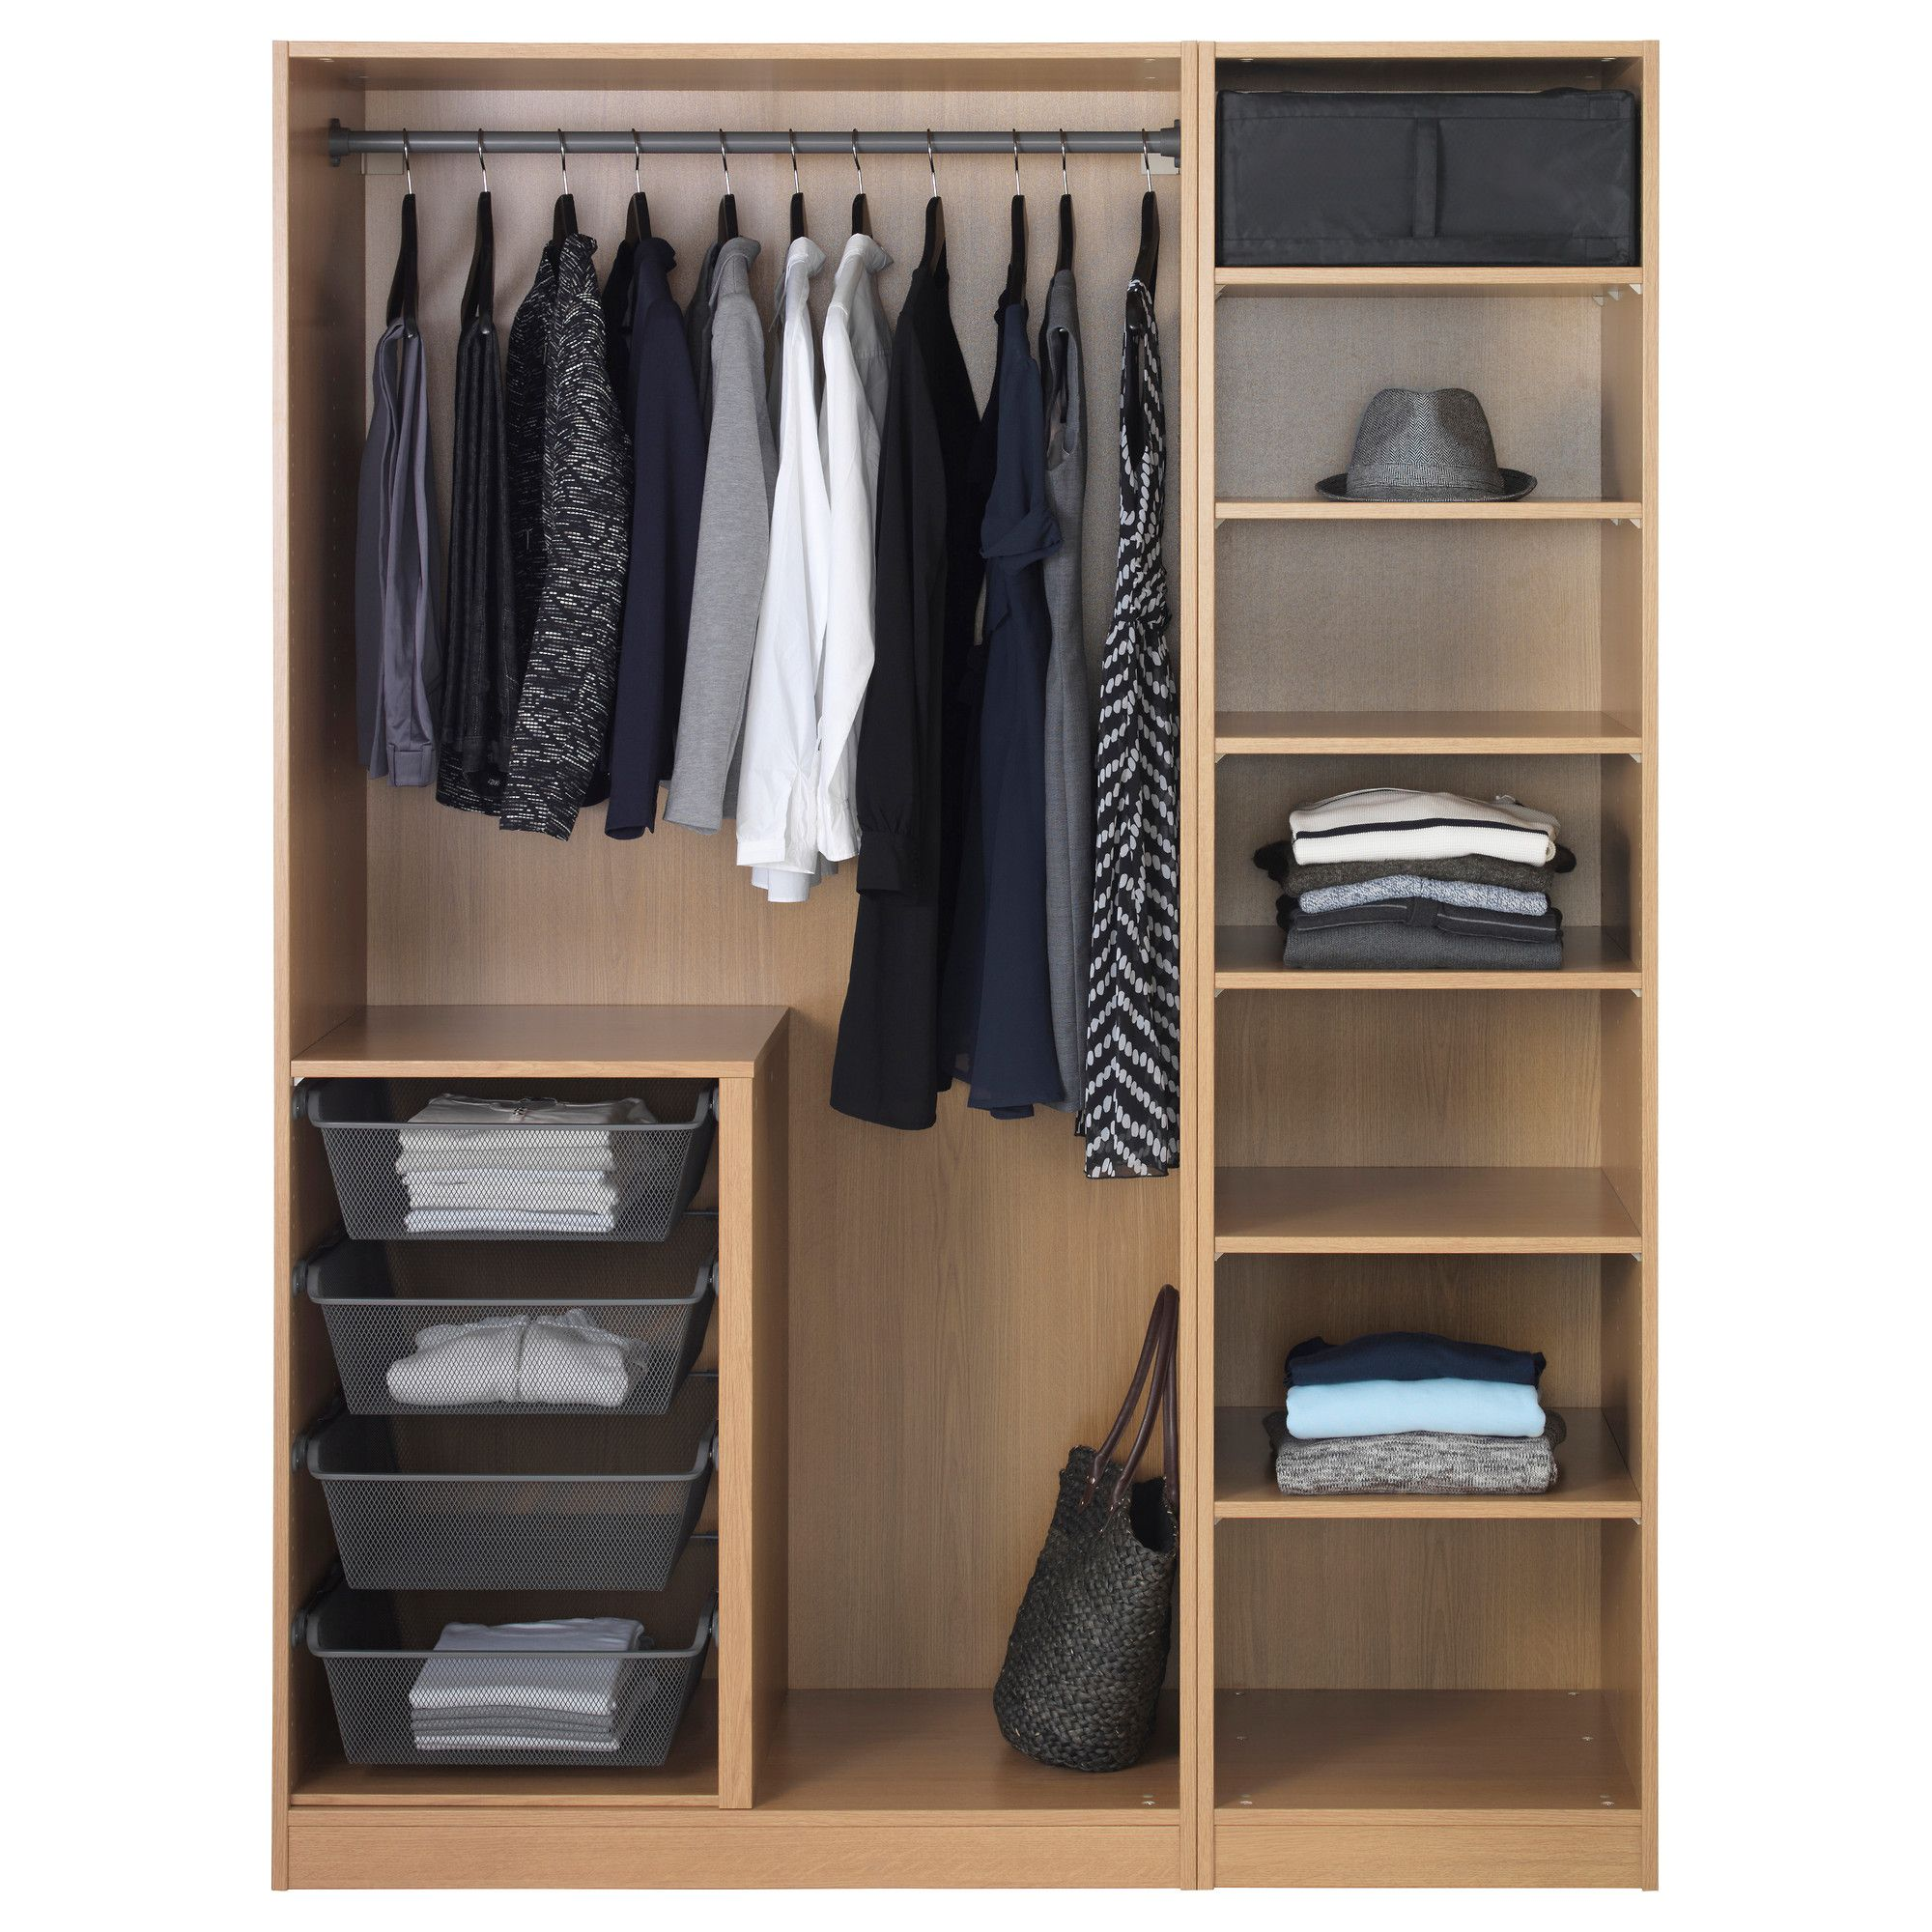 storage and r closet ideas clothes pcok rack interesting four fascinating furniture portable with offering frames system cl model featuring wooden bags shelf stained design white wardrobe ikea co black pax hanging